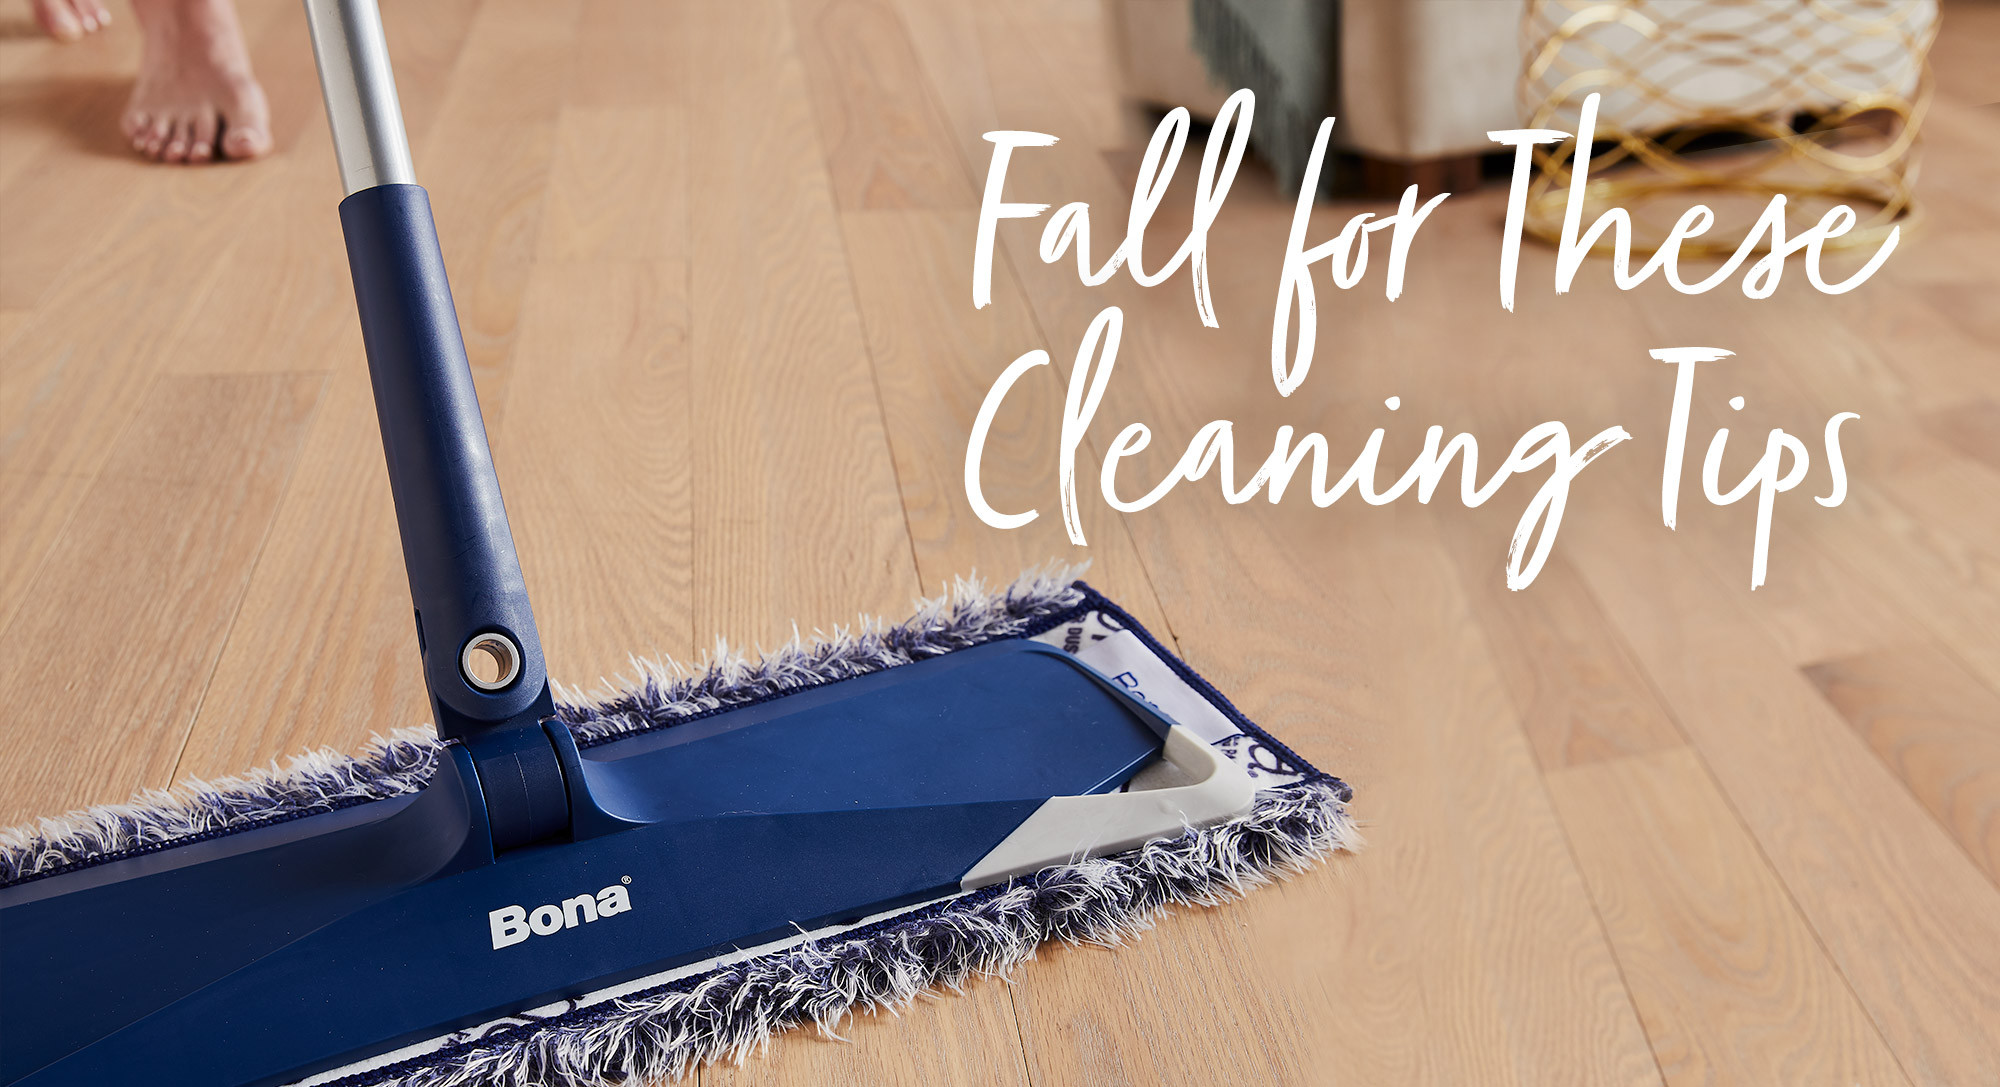 bona ultimate hardwood floor care kit of home bona us in fall feature2